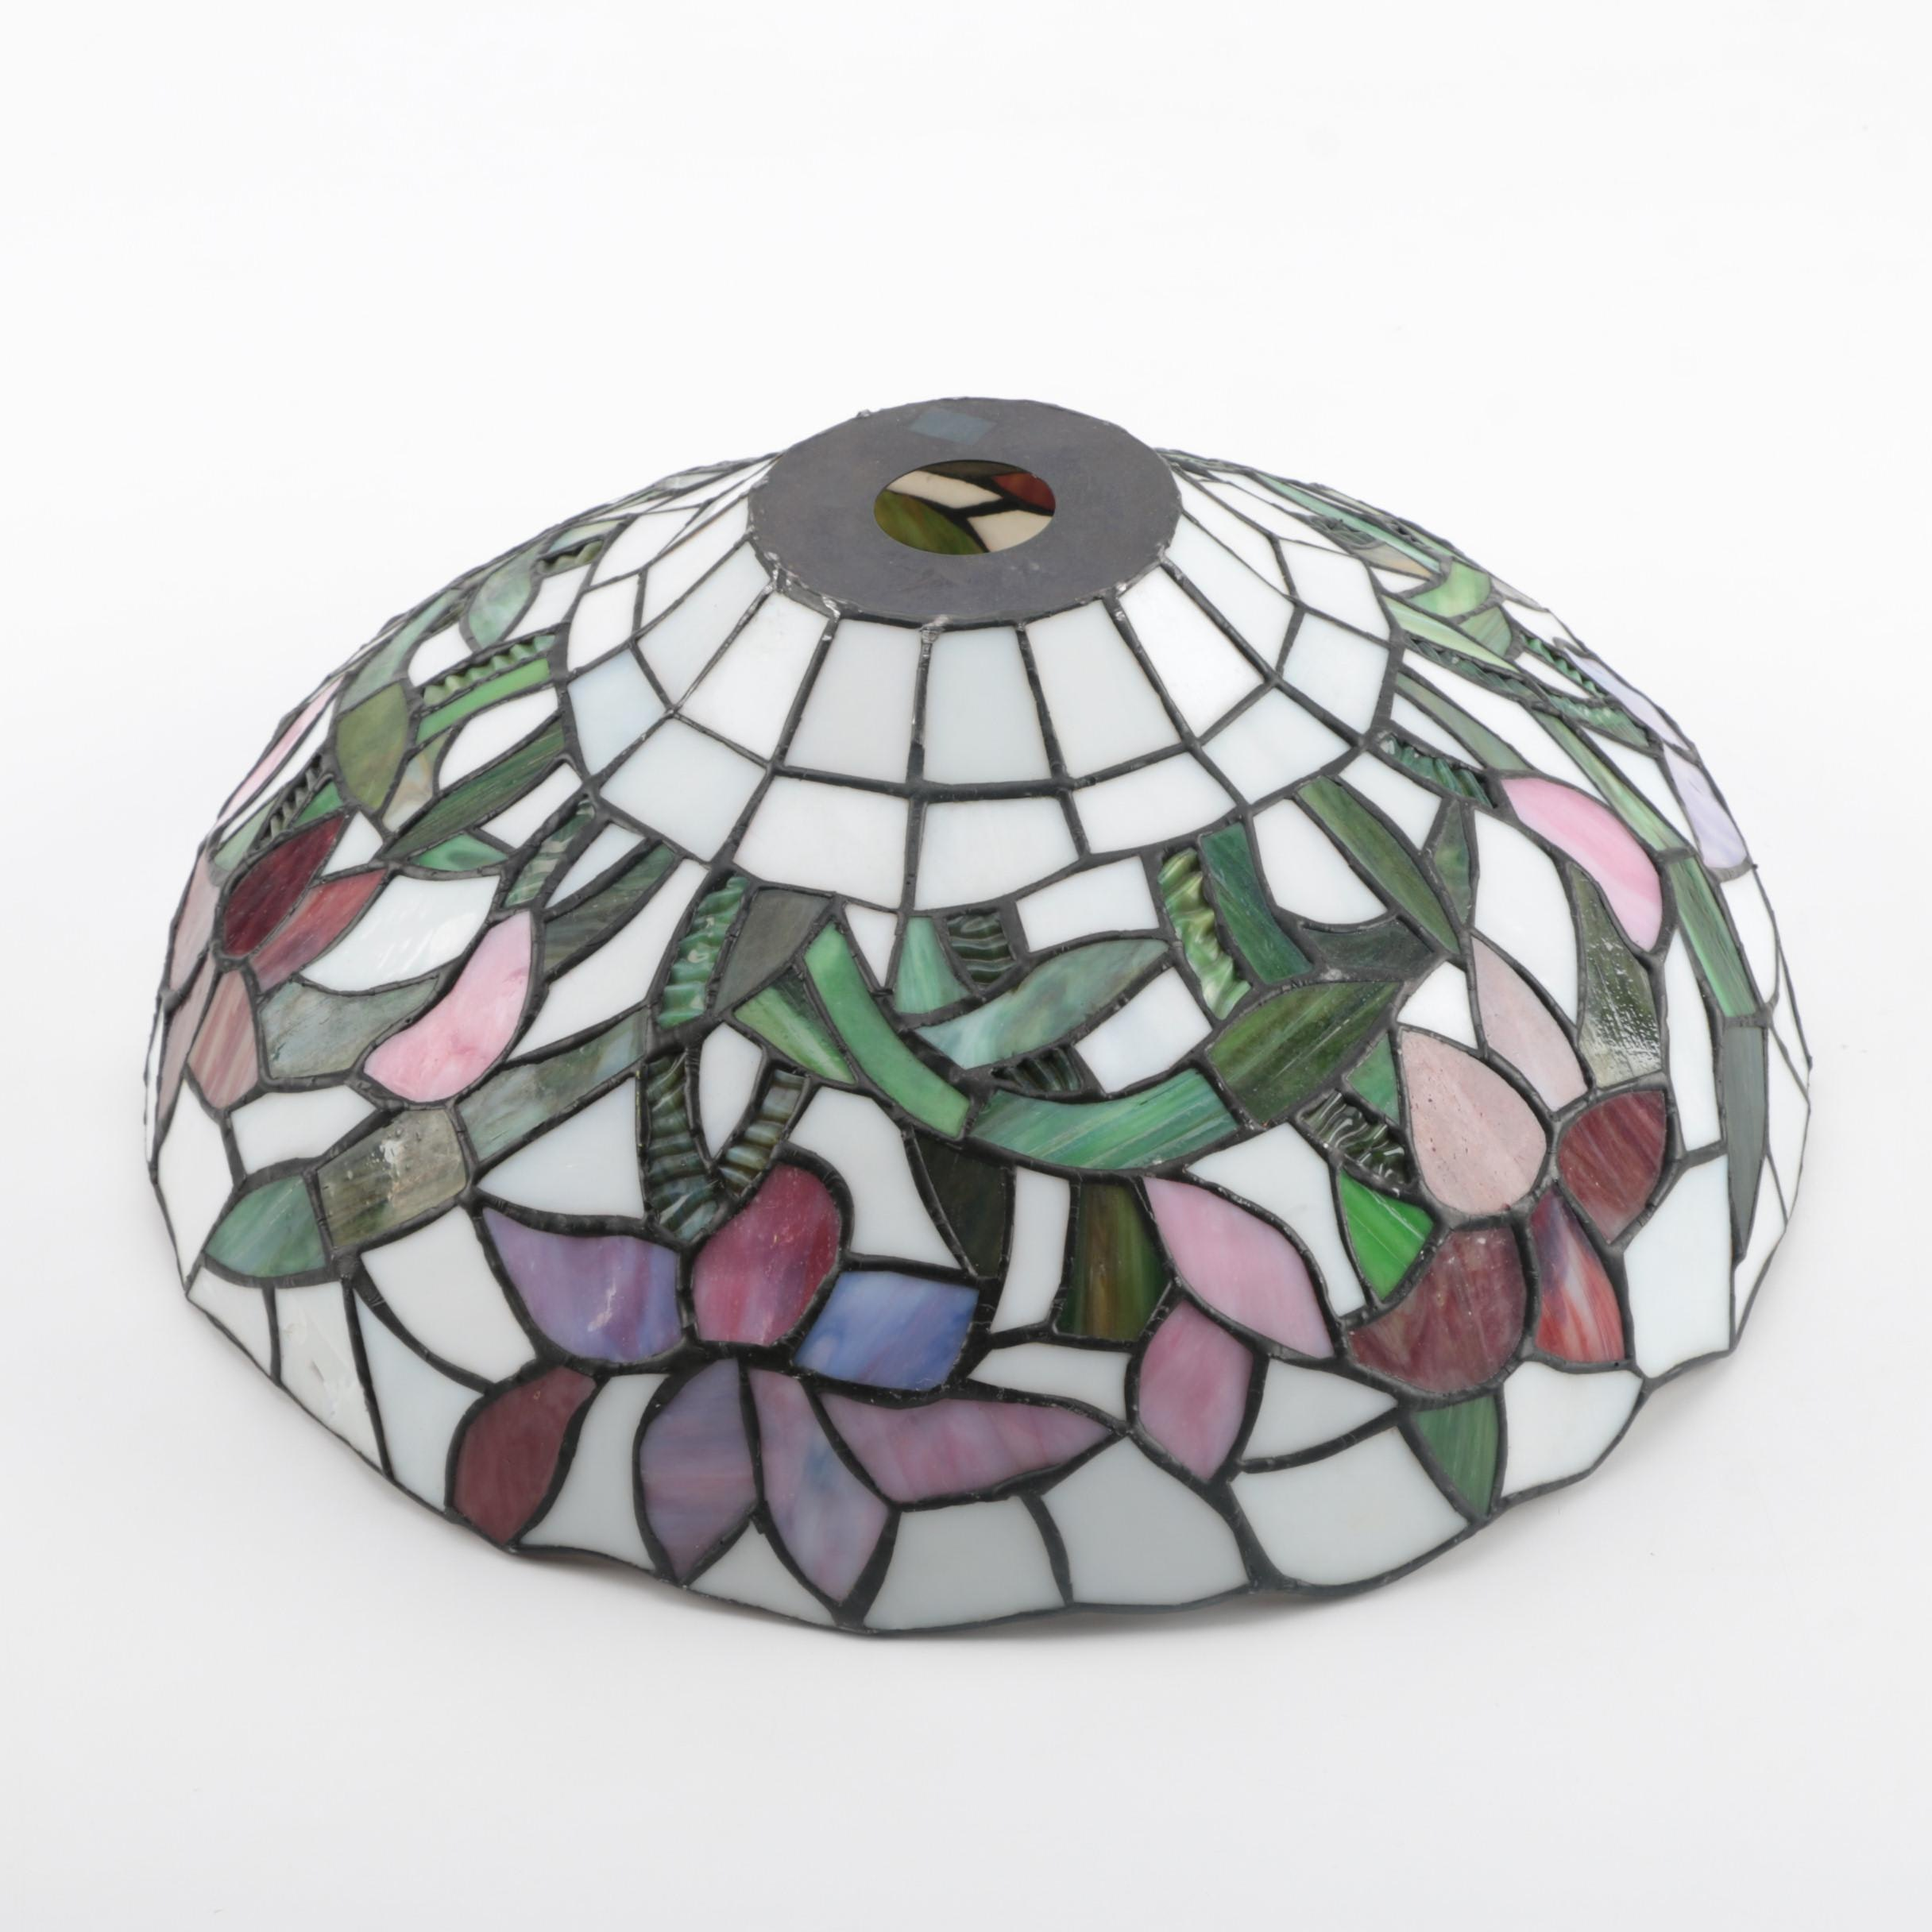 Tiffany Style Slag Glass Lamp Shade